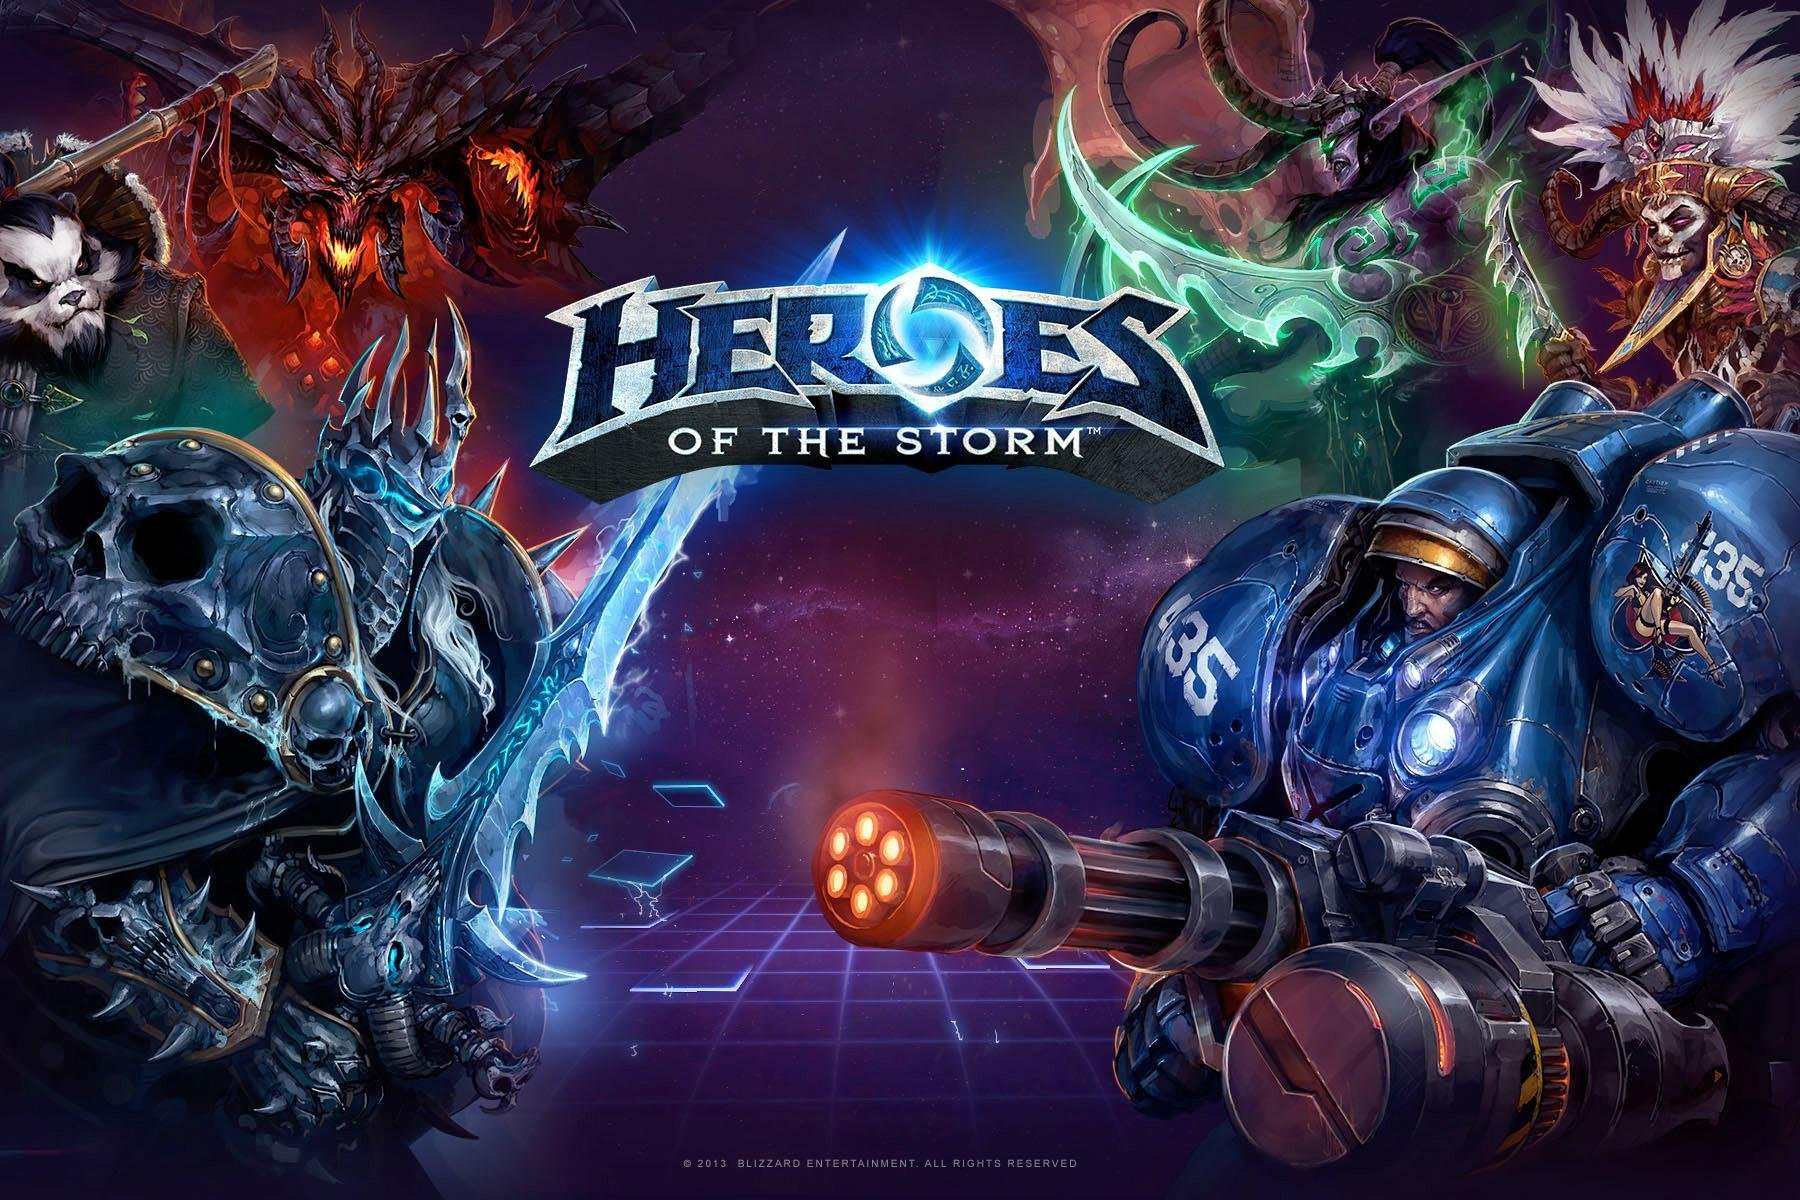 Heroes of the Storm promo art